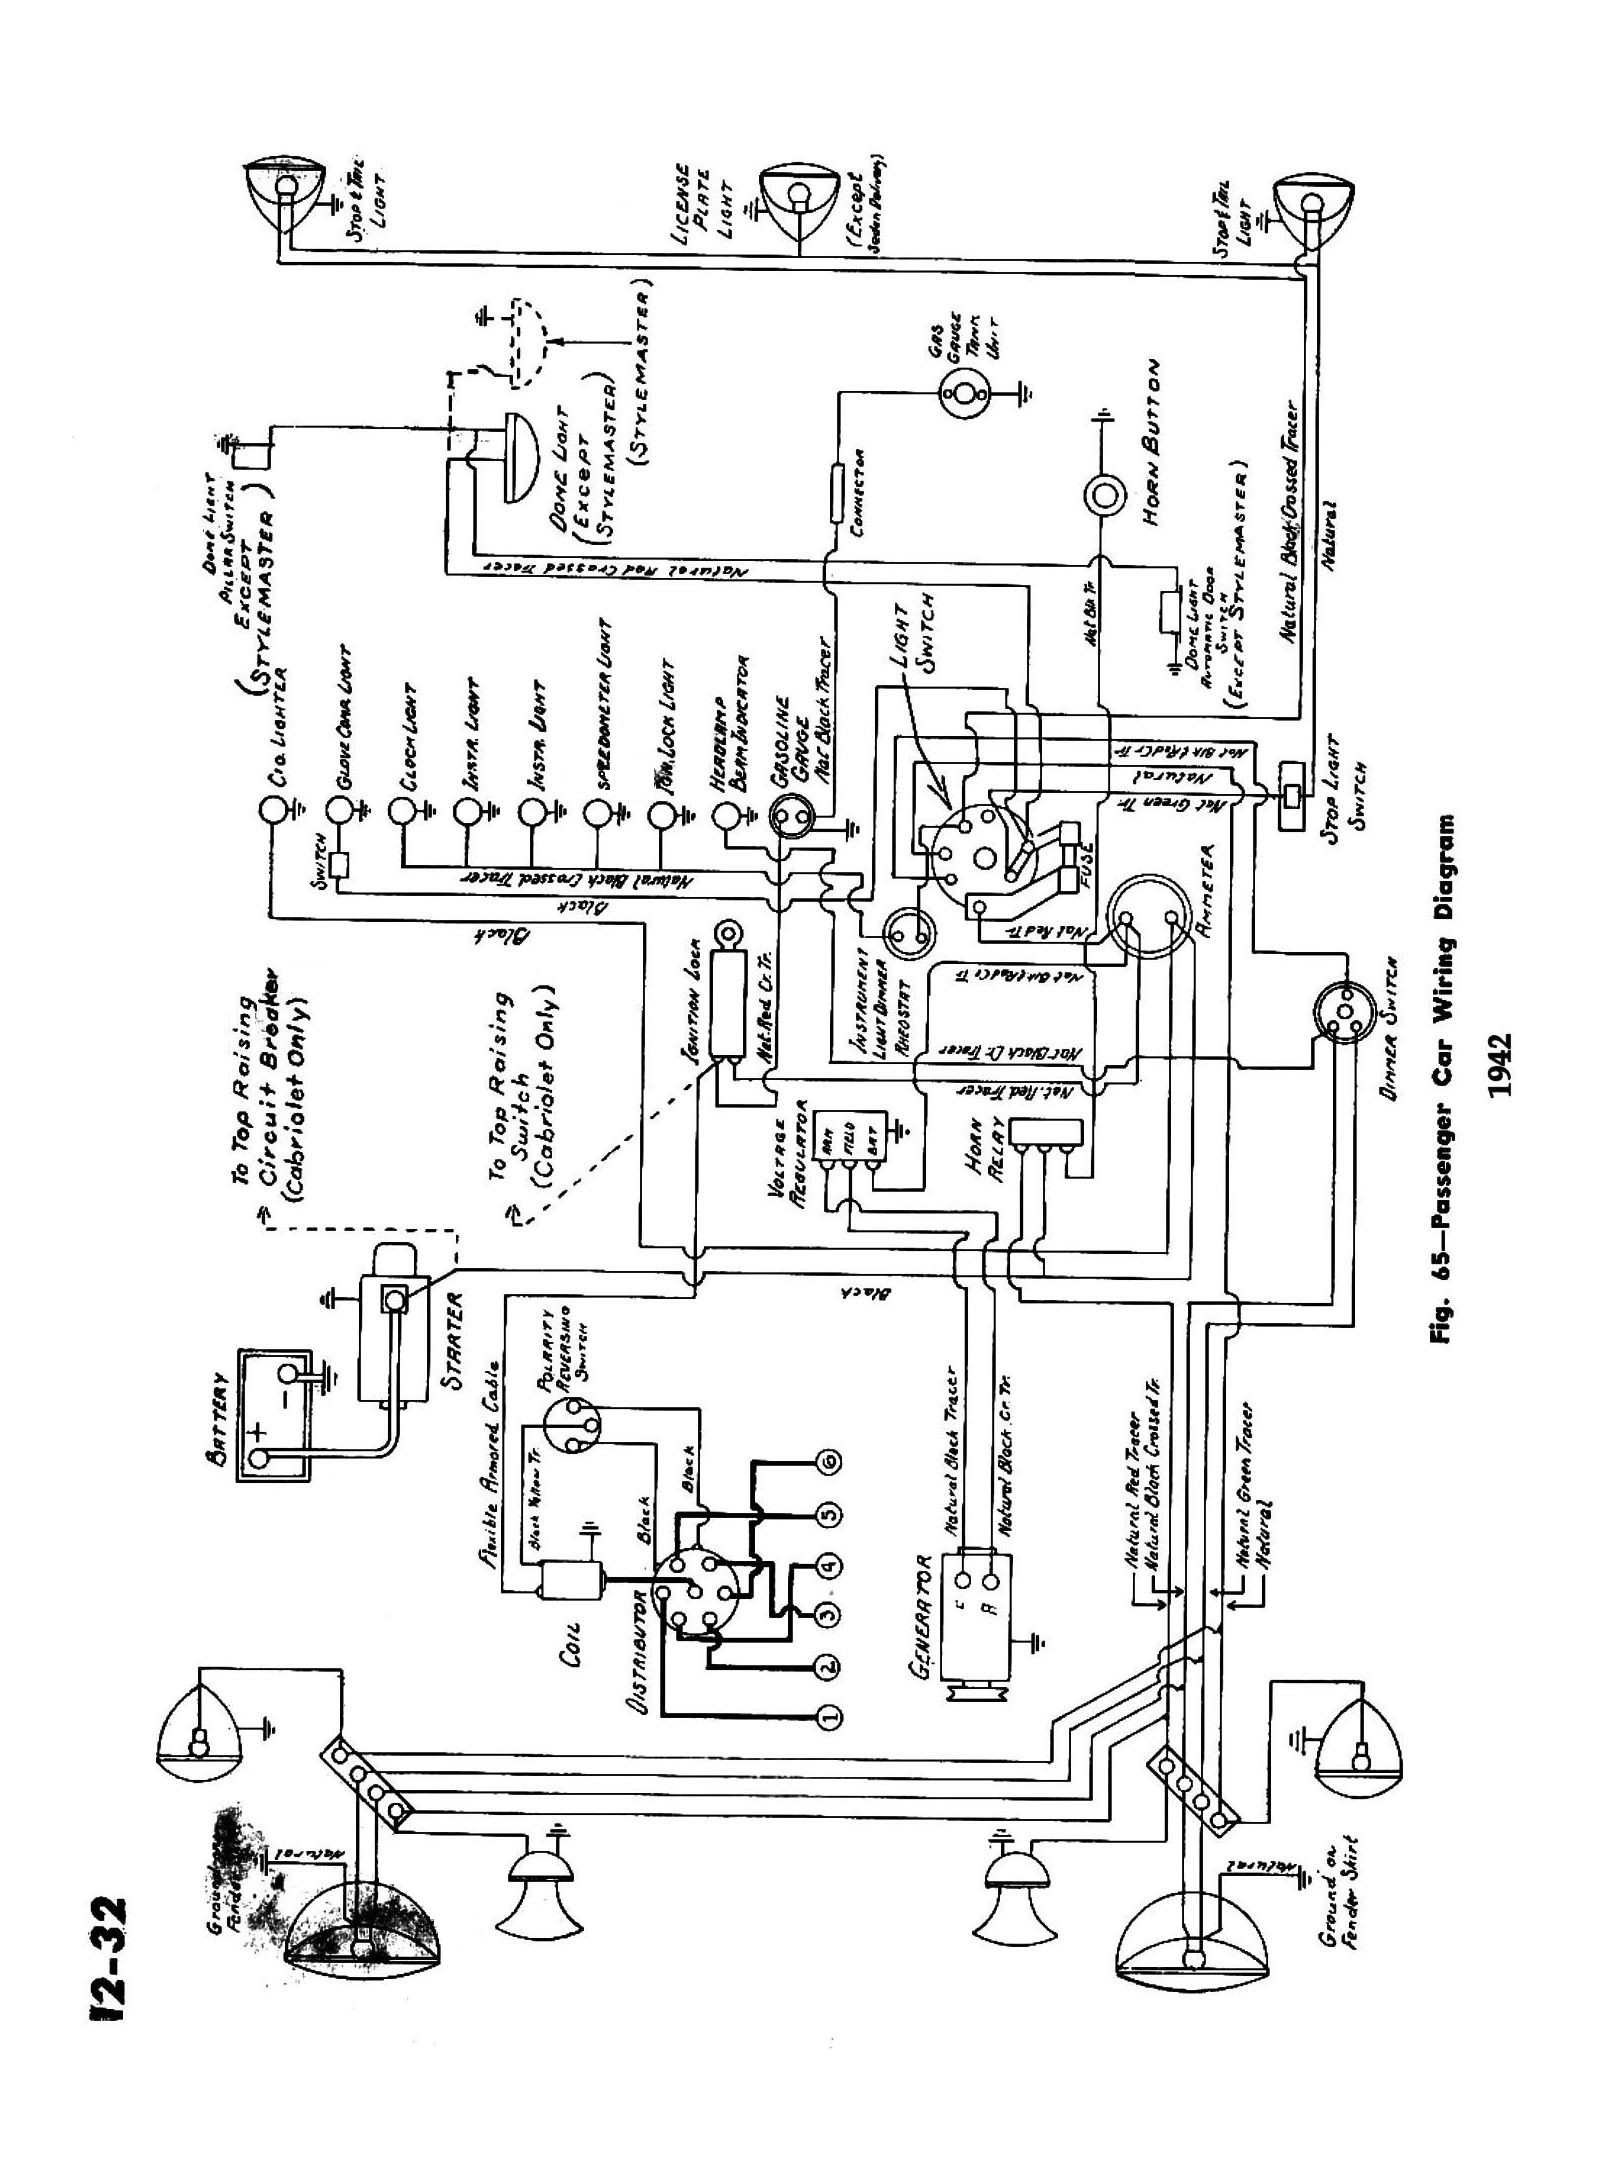 1940 chevy truck wiring harness easy to read wiring diagrams u2022 rh mywiringdiagram today Chevy Ignition Switch Wiring Diagram Chevy P30 Wiring-Diagram